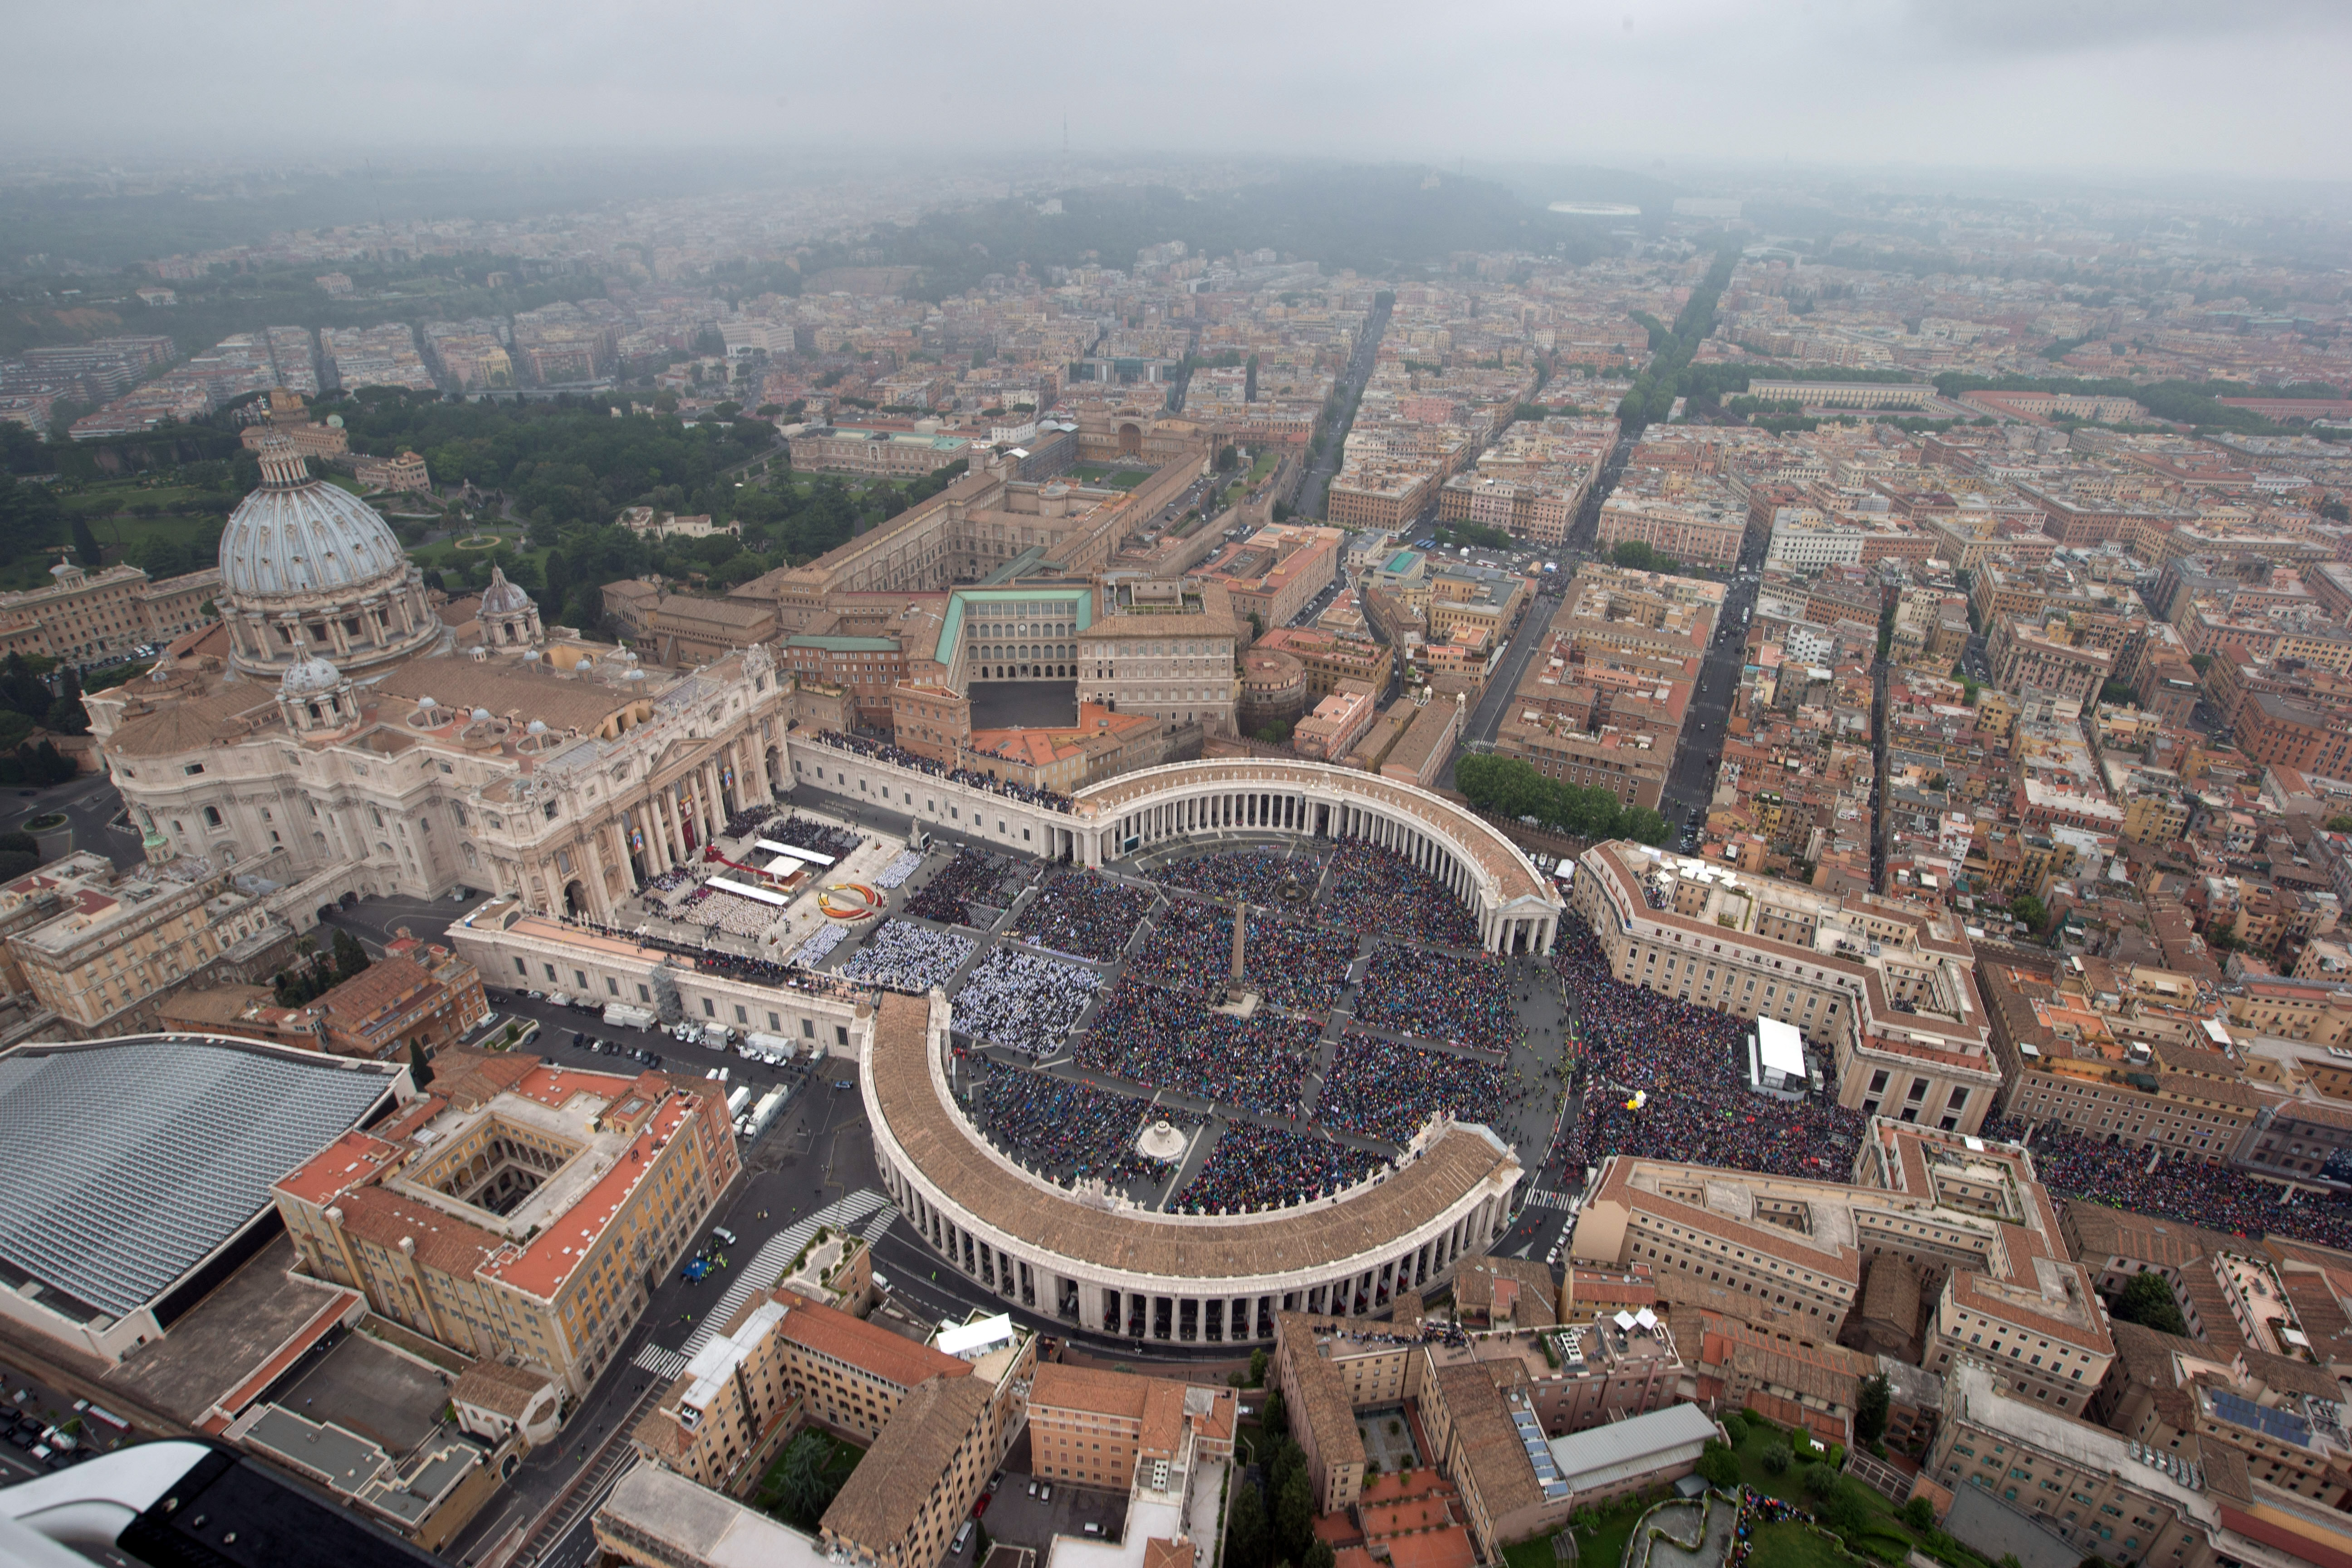 In this handout photo provided by the Italian National Police, an aerial view of St. Peter's Square and Via della Conciliazione is seen as Pope Francis leads a Canonization Mass in which John Paul II and John XXIII are to be declared saints on April 27, 2014 in Vatican City, Vatican. Dignitaries, heads of state and Royals from around the world attended the canonisations in the Vatican today. (Photo by Massimo Sestini/Italian National Police via Getty Images)